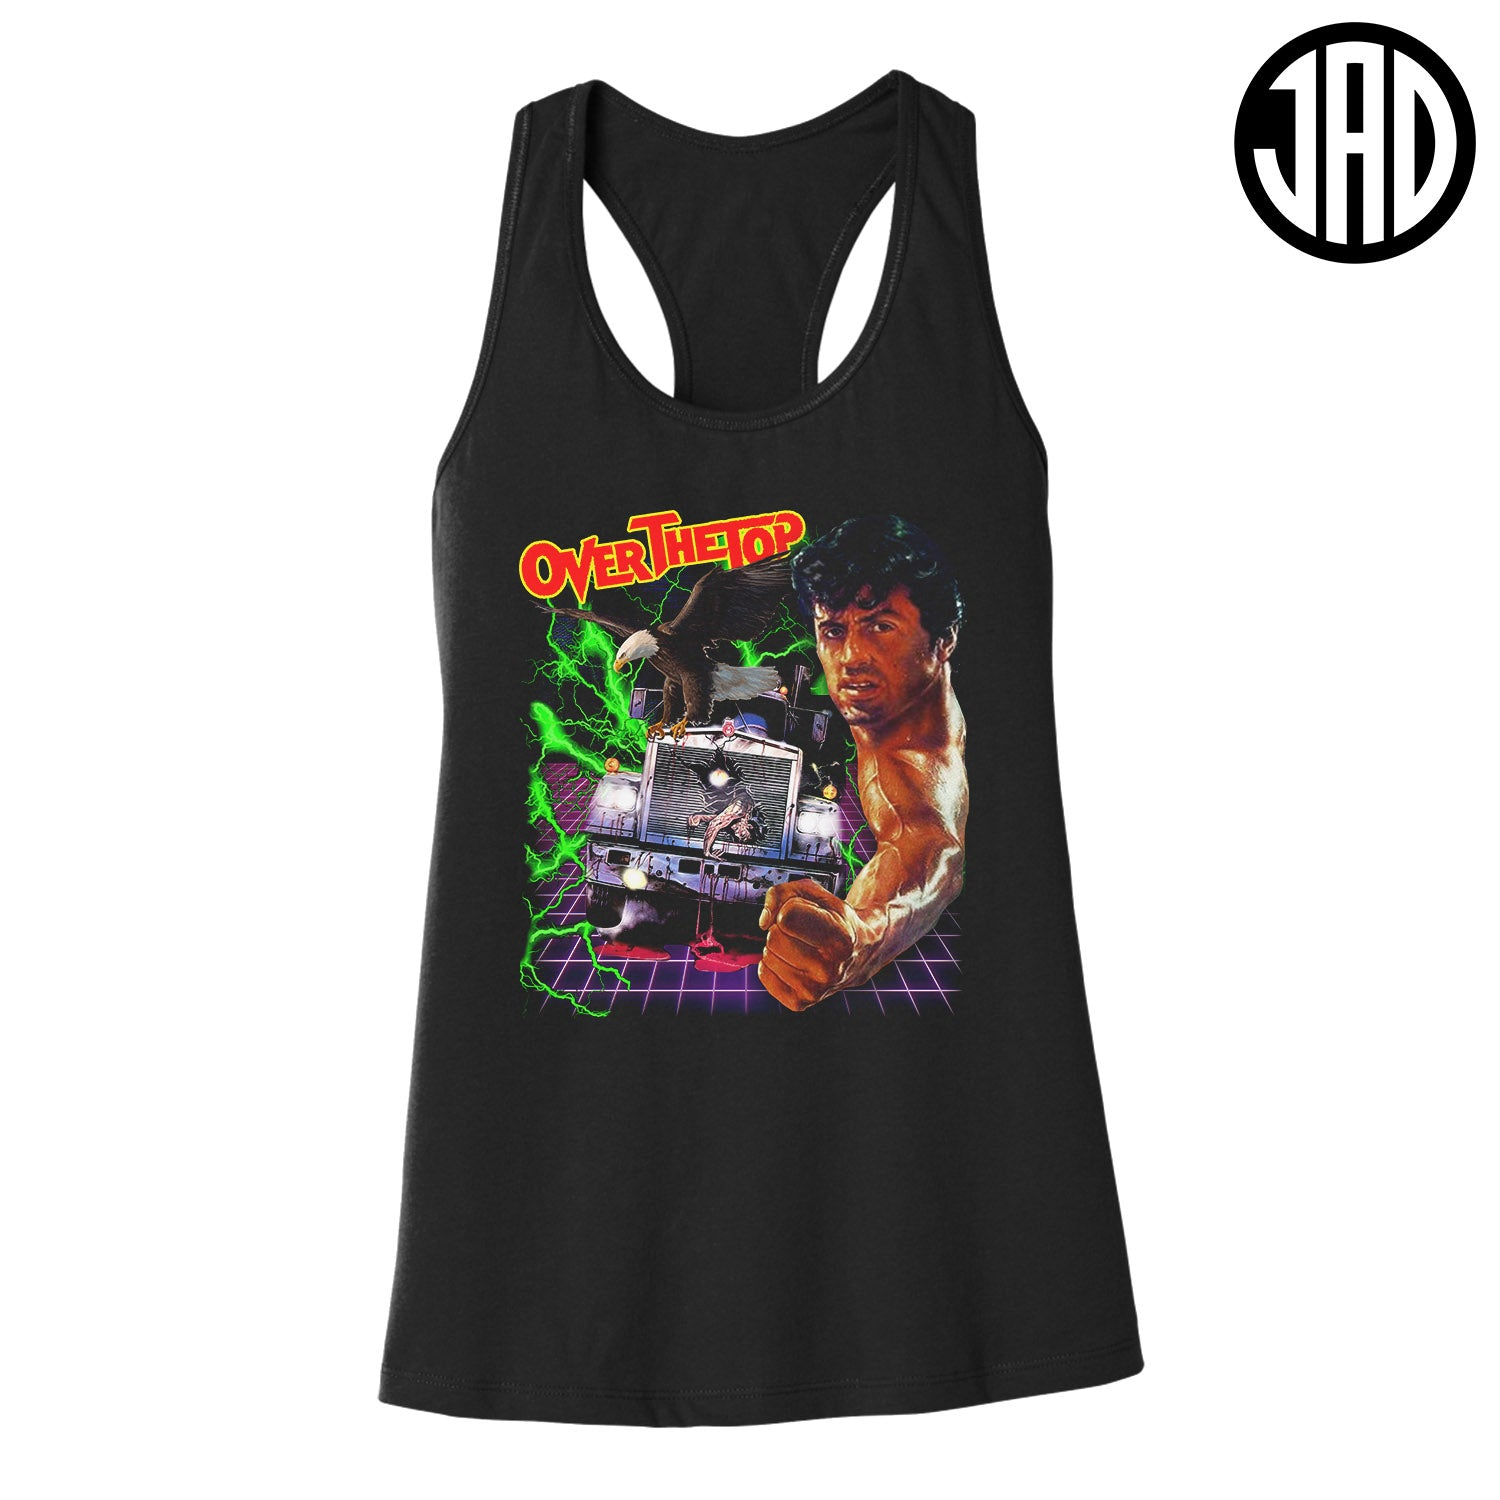 Over The Top - Women's Racerback Tank